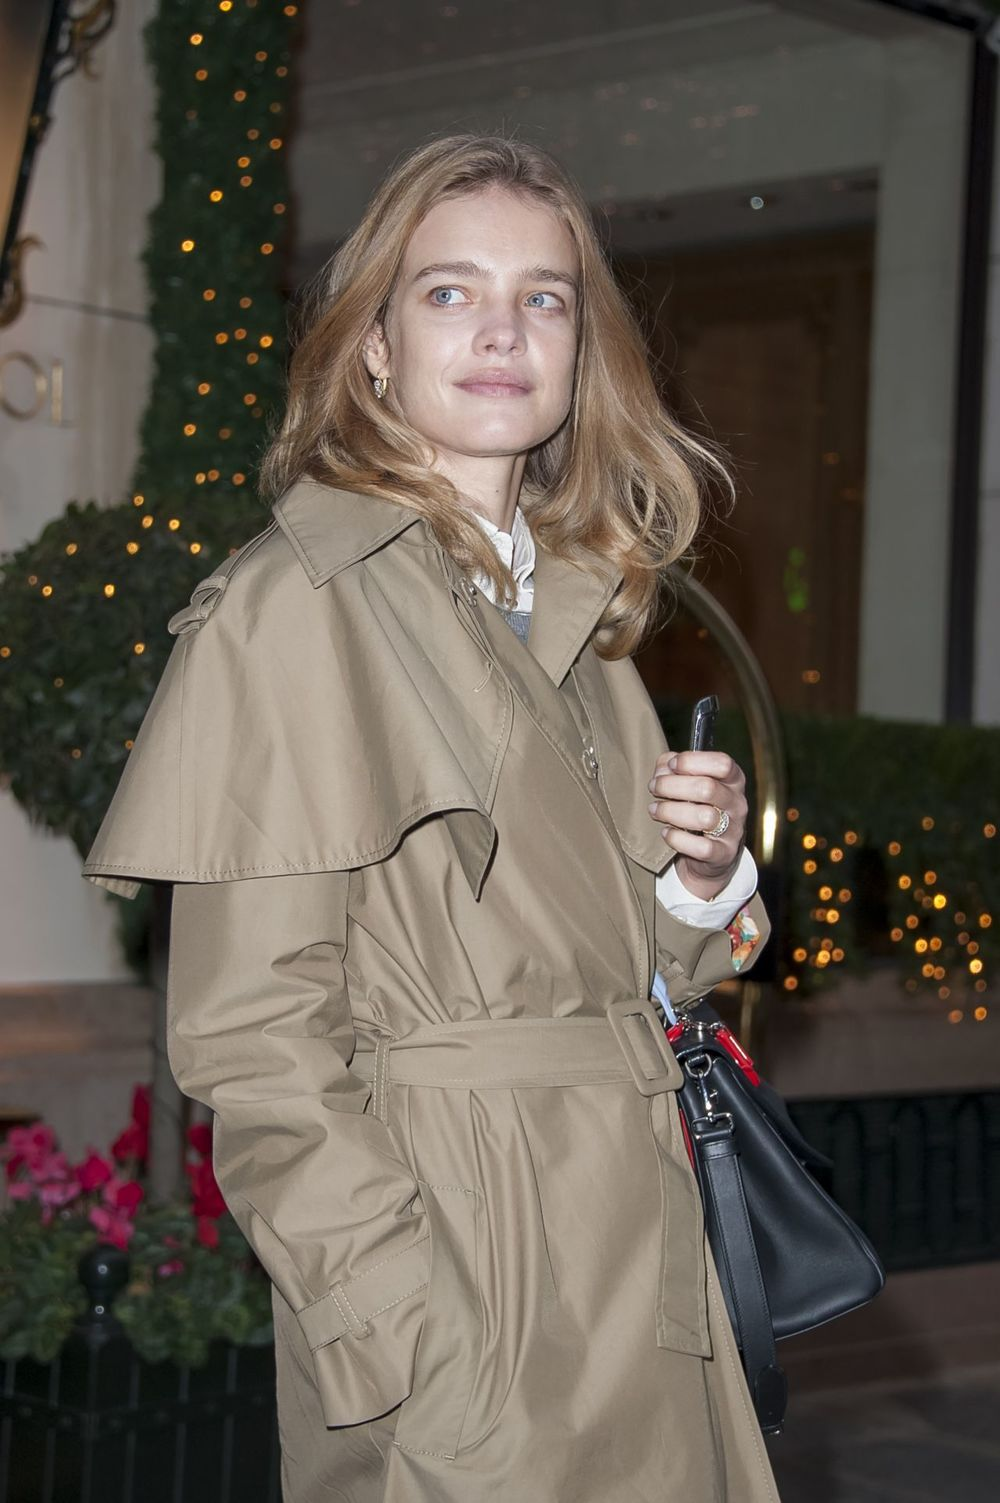 natalia-vodianova-style-leaves-the-bristol-hotel-in-paris-december-2014_1.jpg